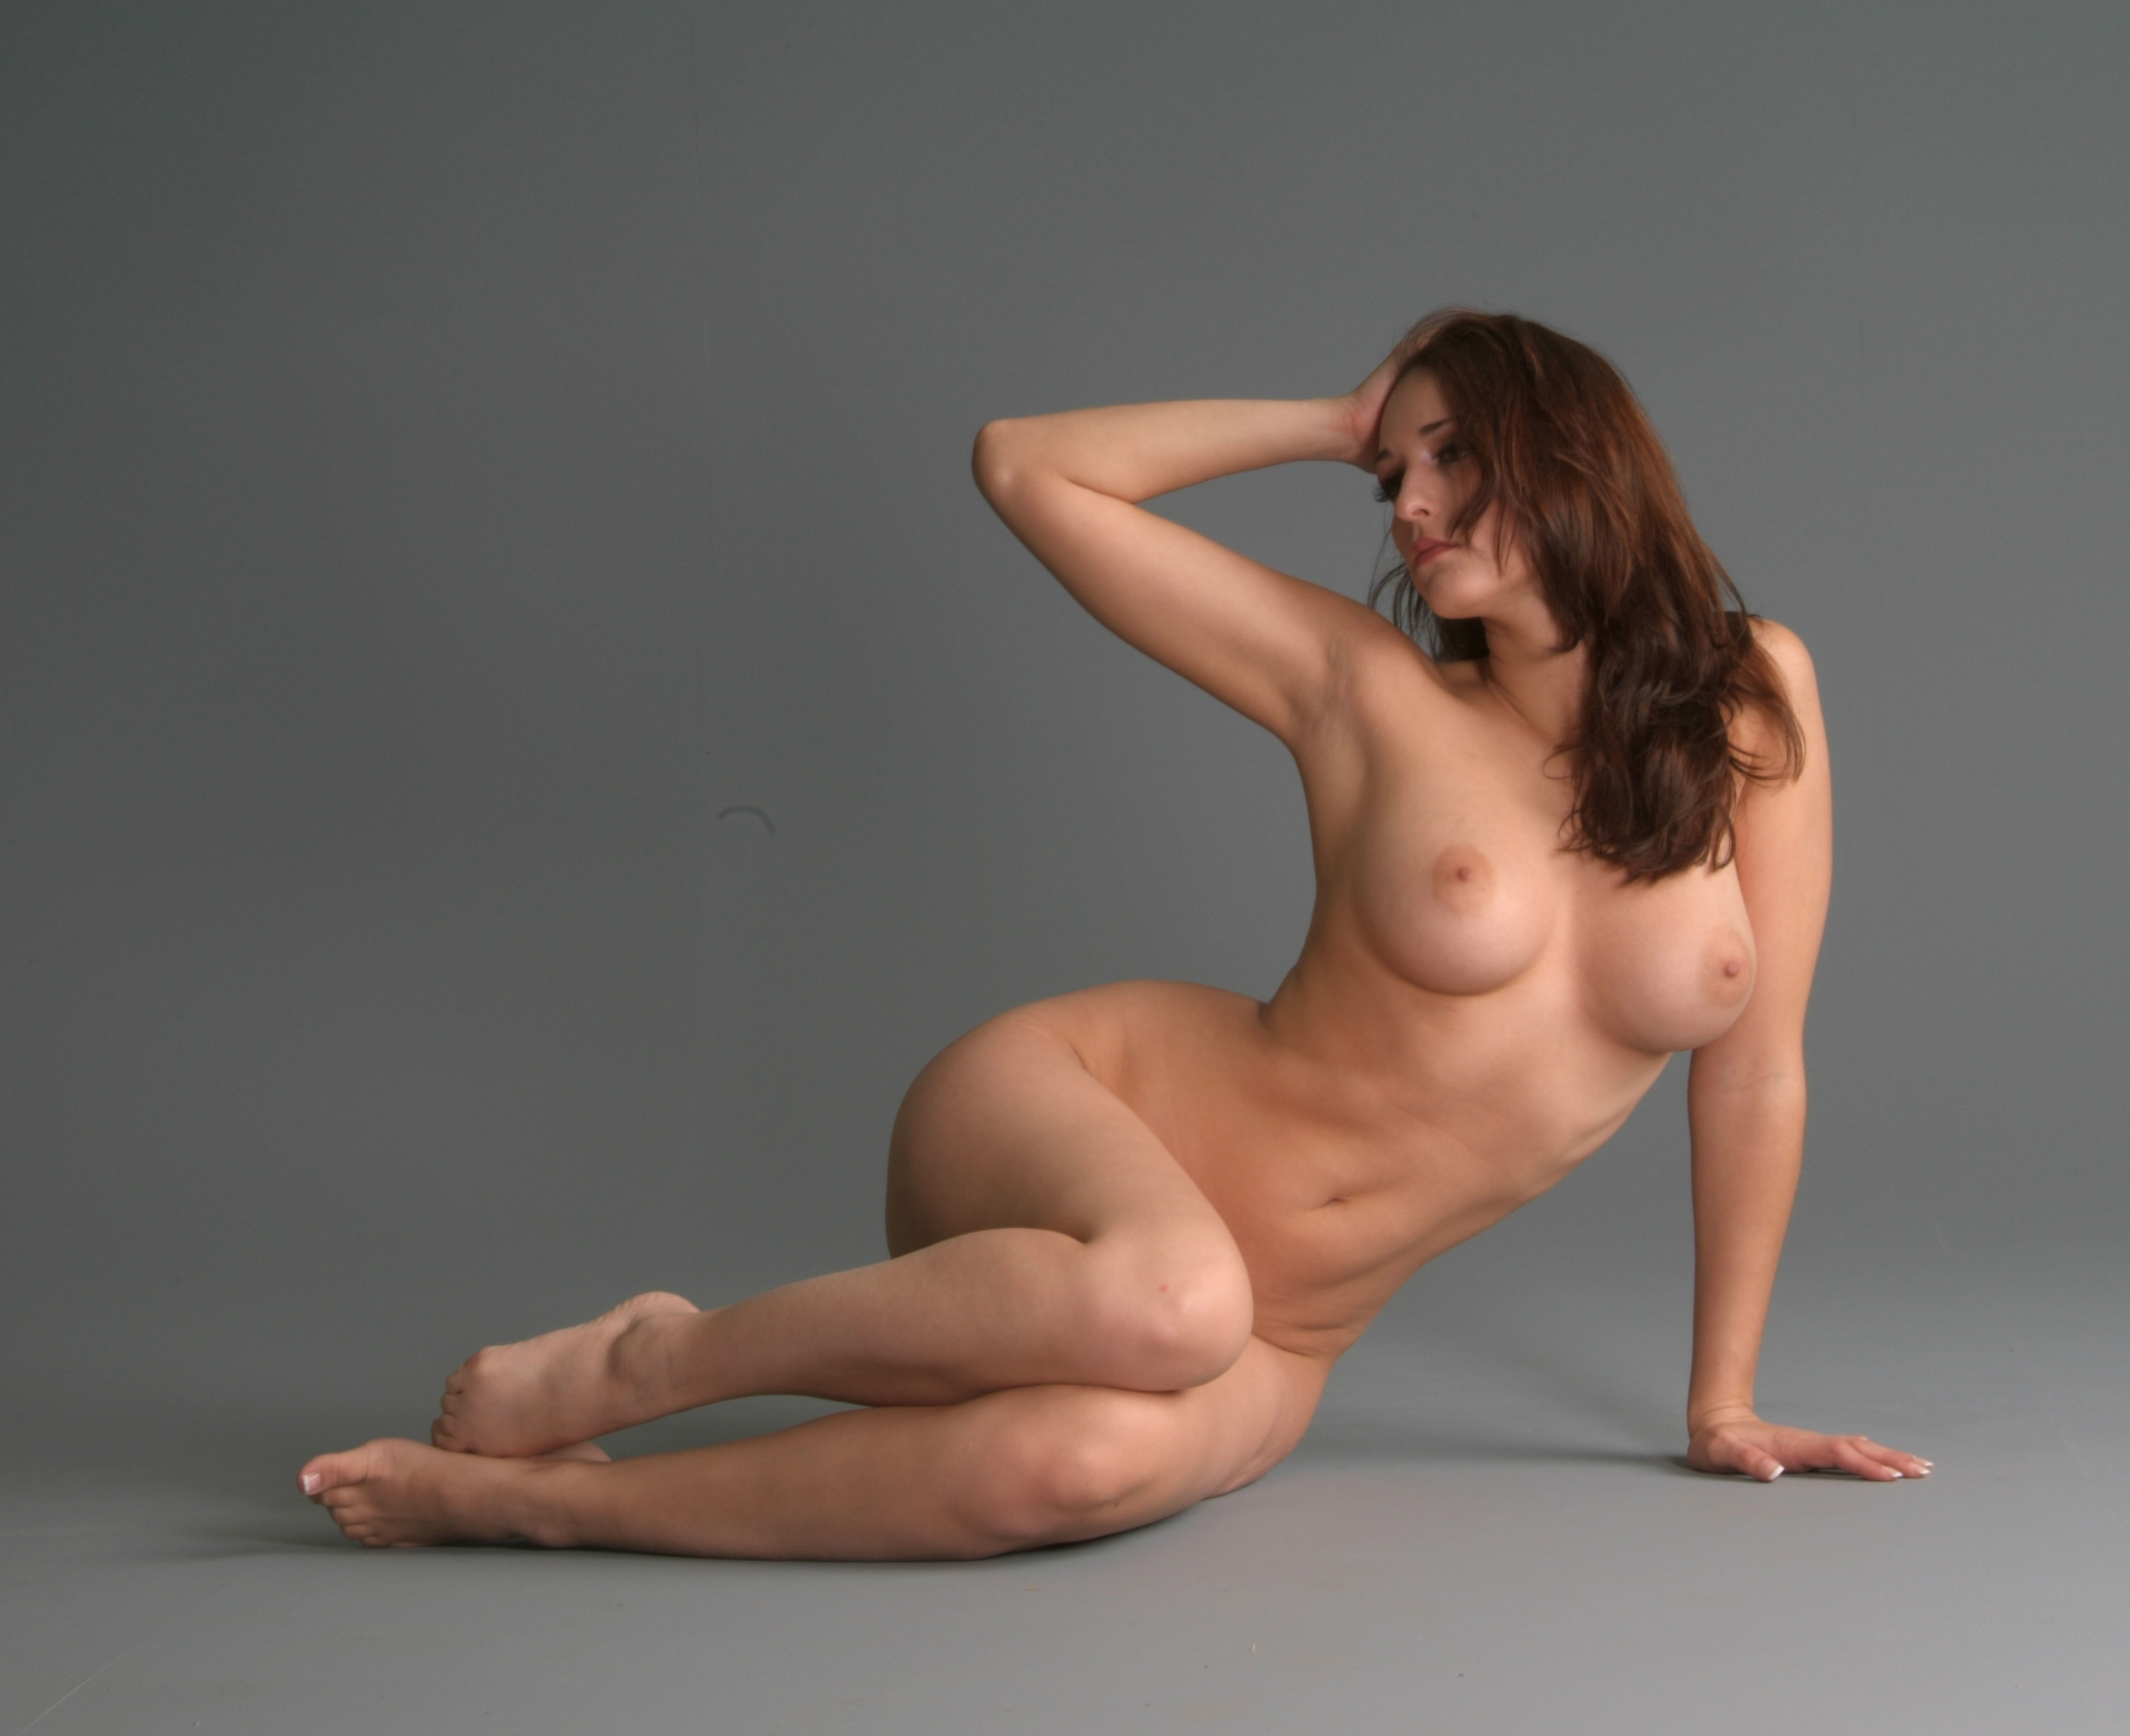 women-nude-poses